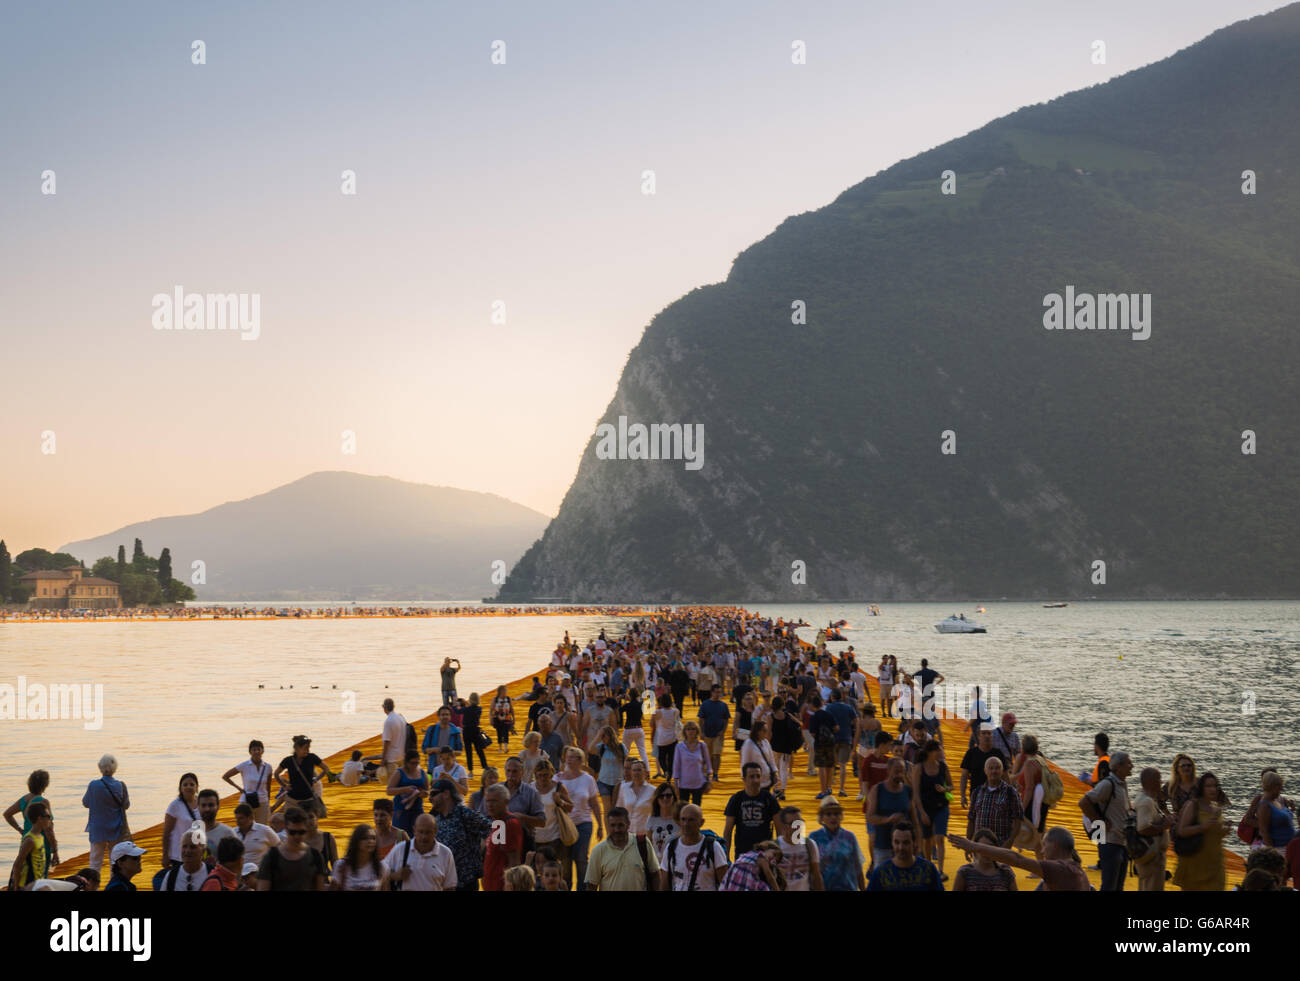 The Floating Piers Christo project. Visitors walking from Sulzano to Monte Isola and to the island of San Paolo. - Stock Image